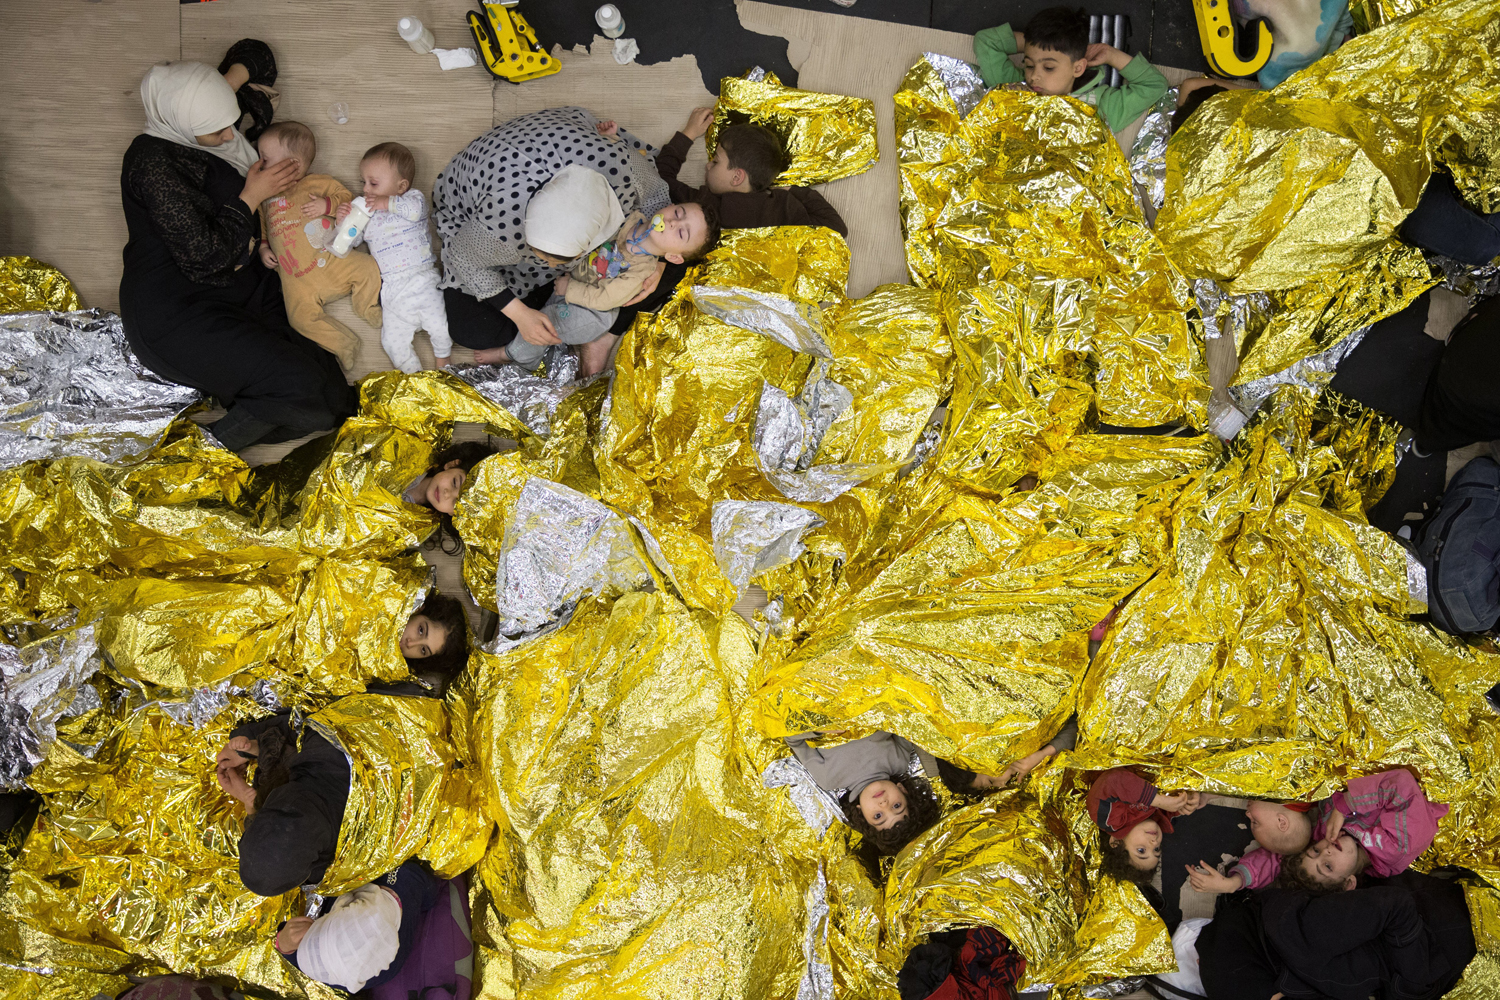 Syrian refugees sleeping on an Italian navy ship after being rescued from a fishing vessel carrying 443 Syrian asylum seekers, June 5, 2014.